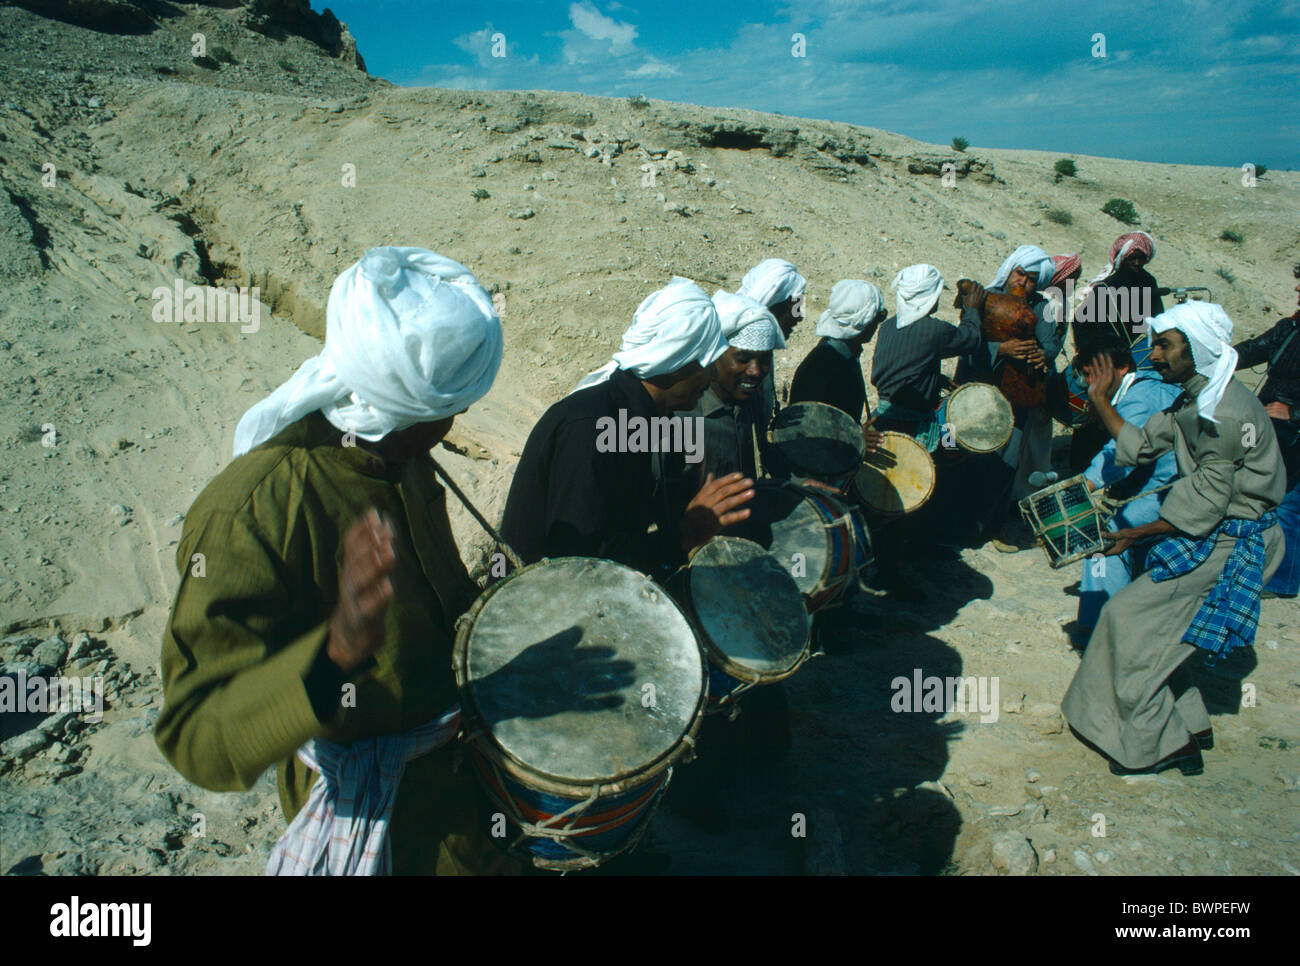 BAHRAIN Middle East Gulf State Music Musicians playing drums in a desert landscape Stock Photo